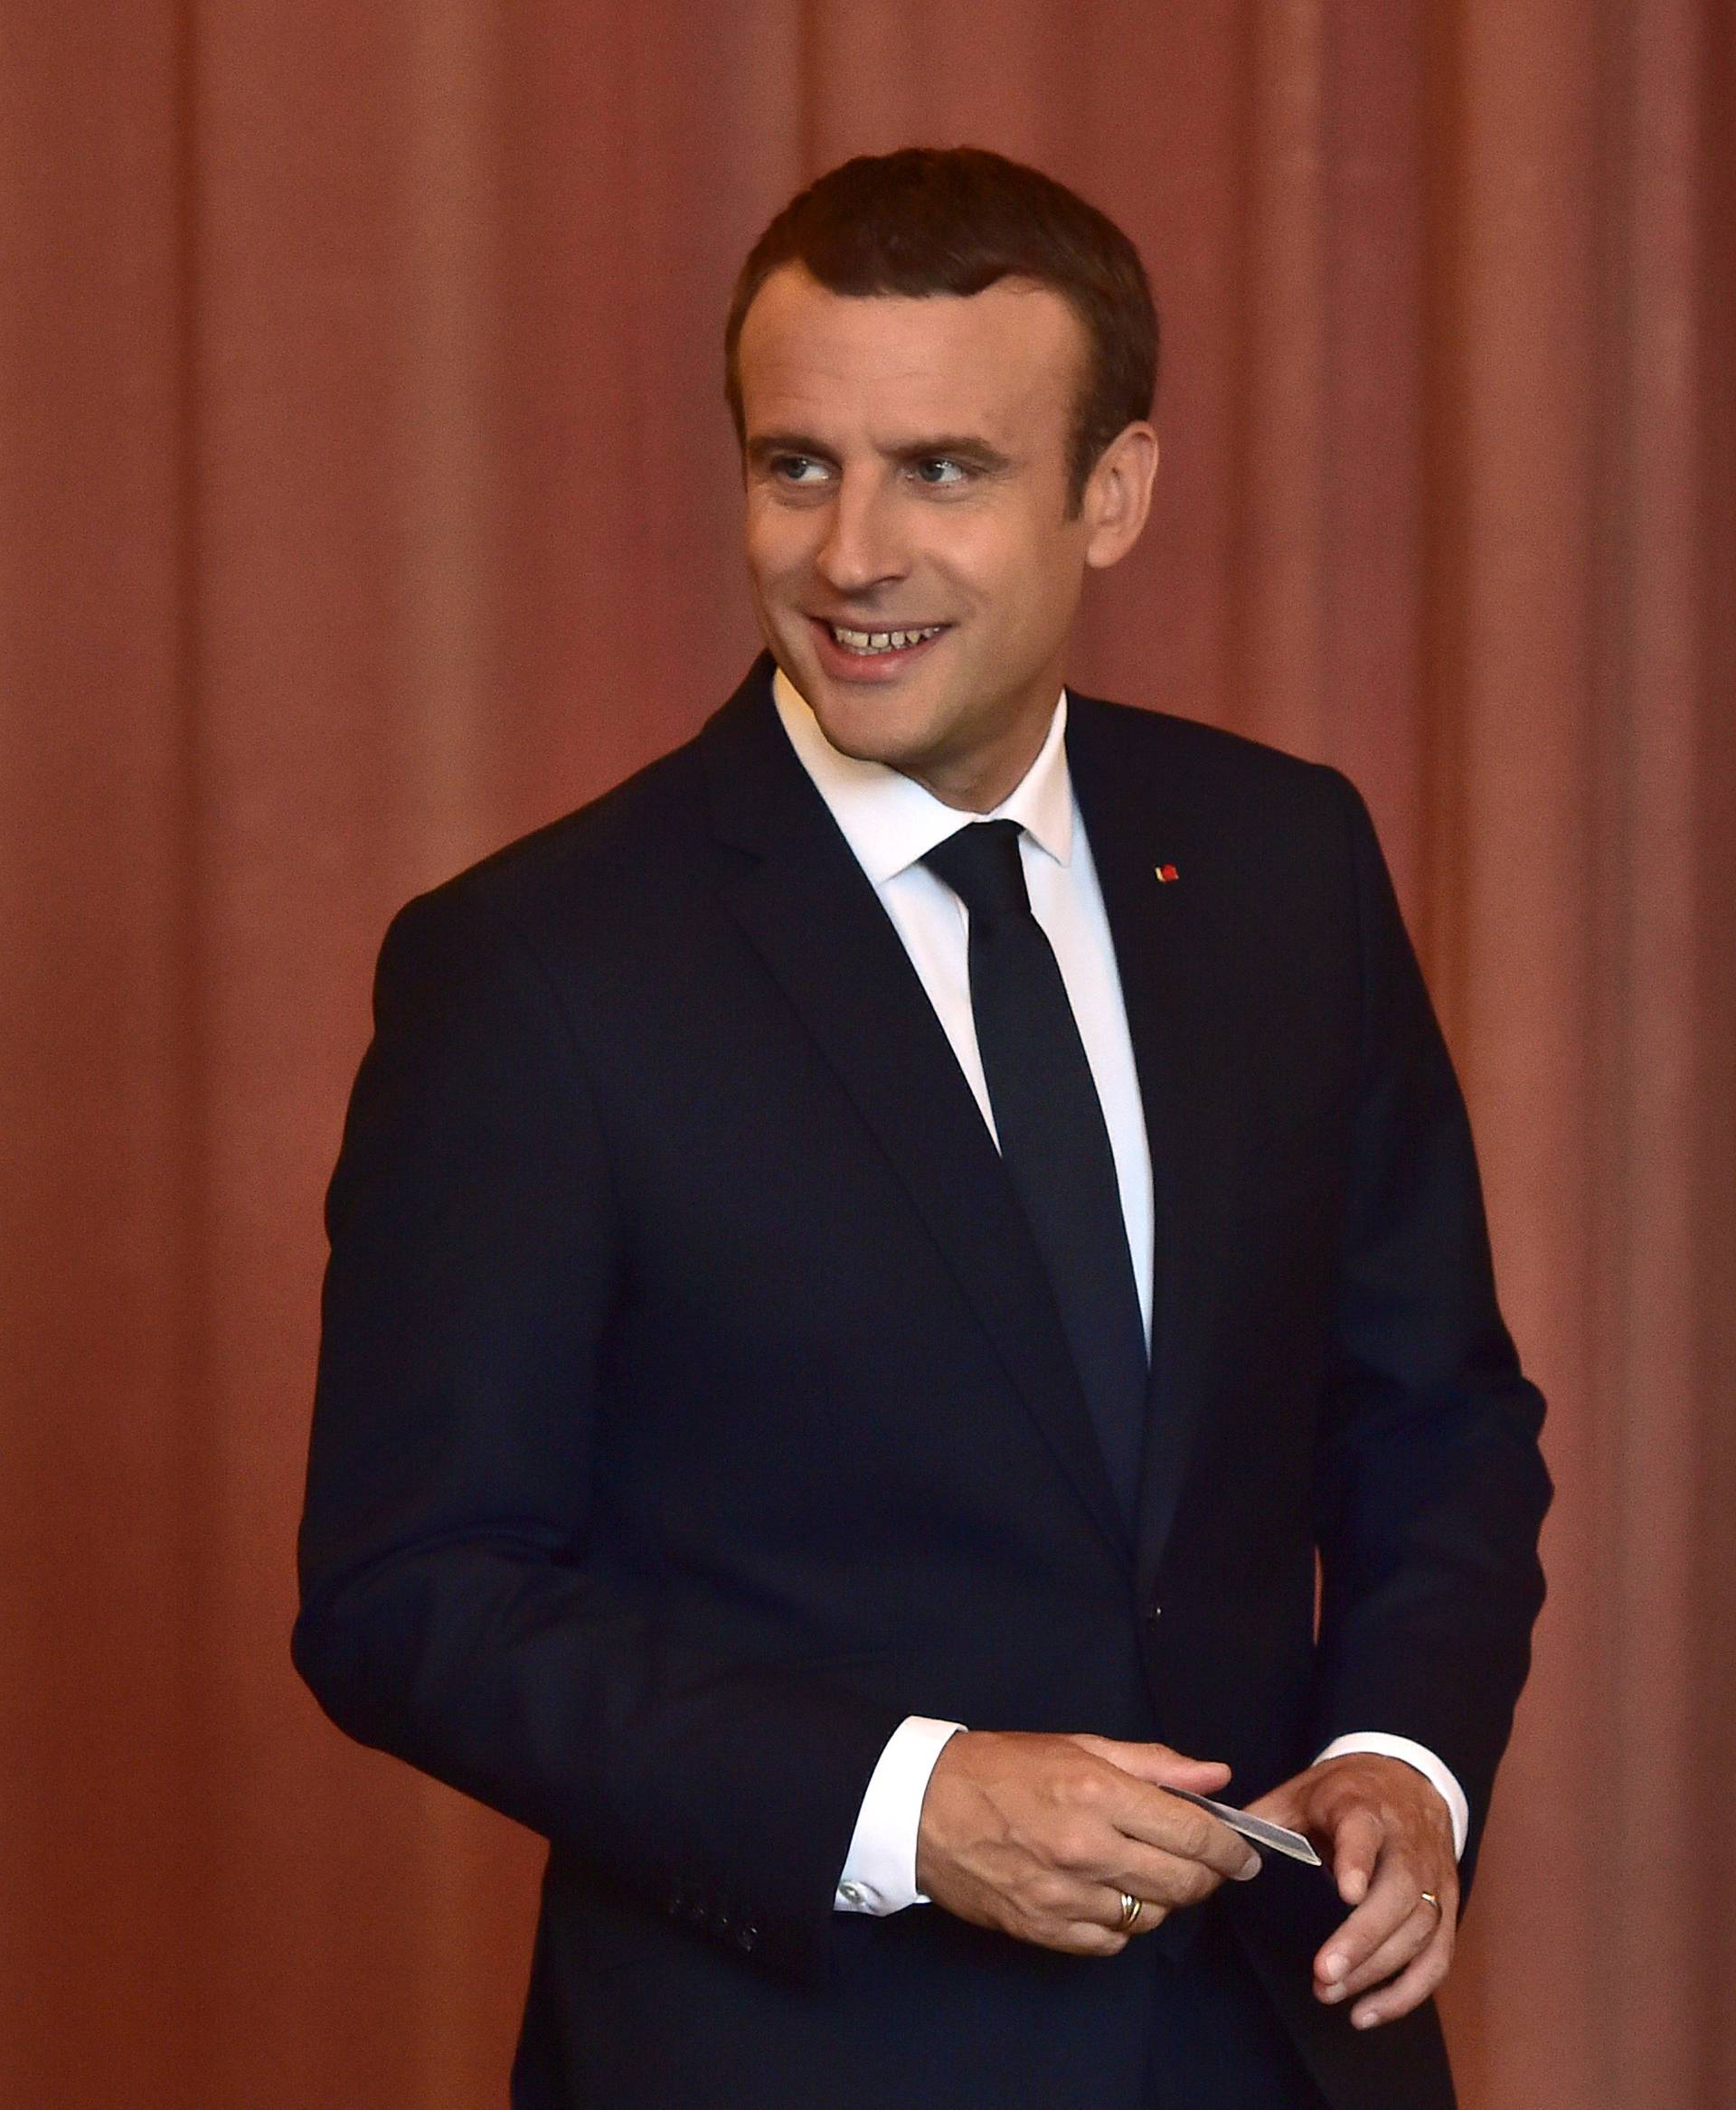 French President Emmanuel Macron arrives to vote at a polling station in the second round parliamentary elections in Le Touquet